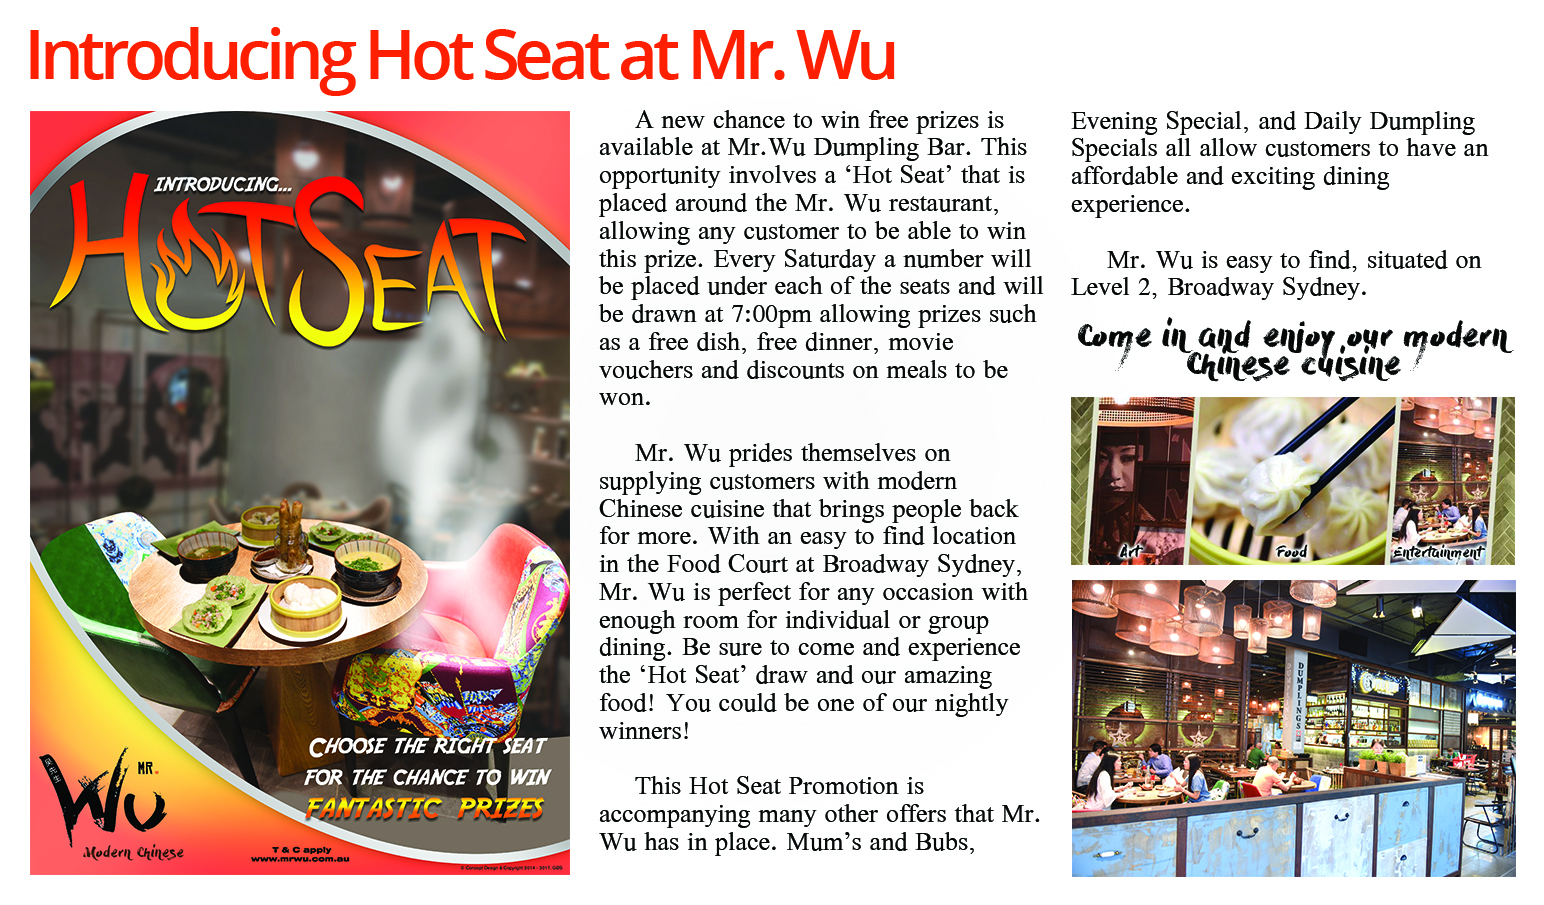 Hot Seat Mr. Wu